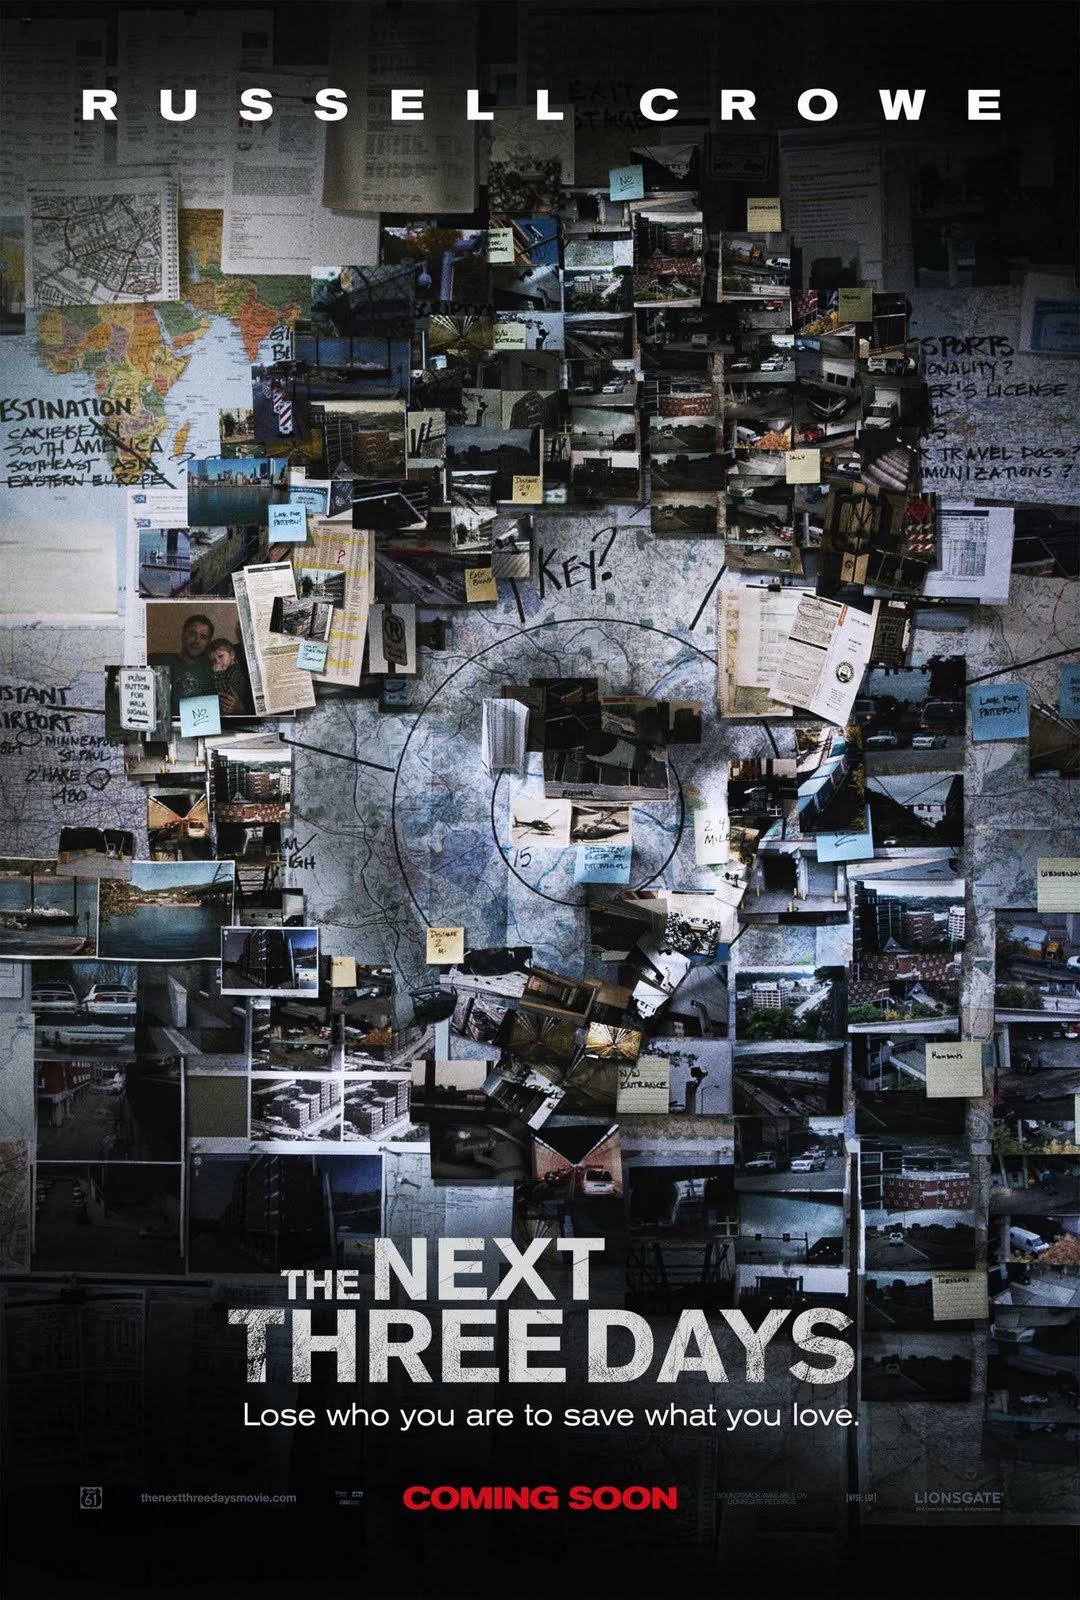 http://4.bp.blogspot.com/_vpYrEs8k8Sk/TT4YljilNKI/AAAAAAAABWU/XfSskrLwbw8/s1600/2010_the_next_three_days_poster_001.jpg